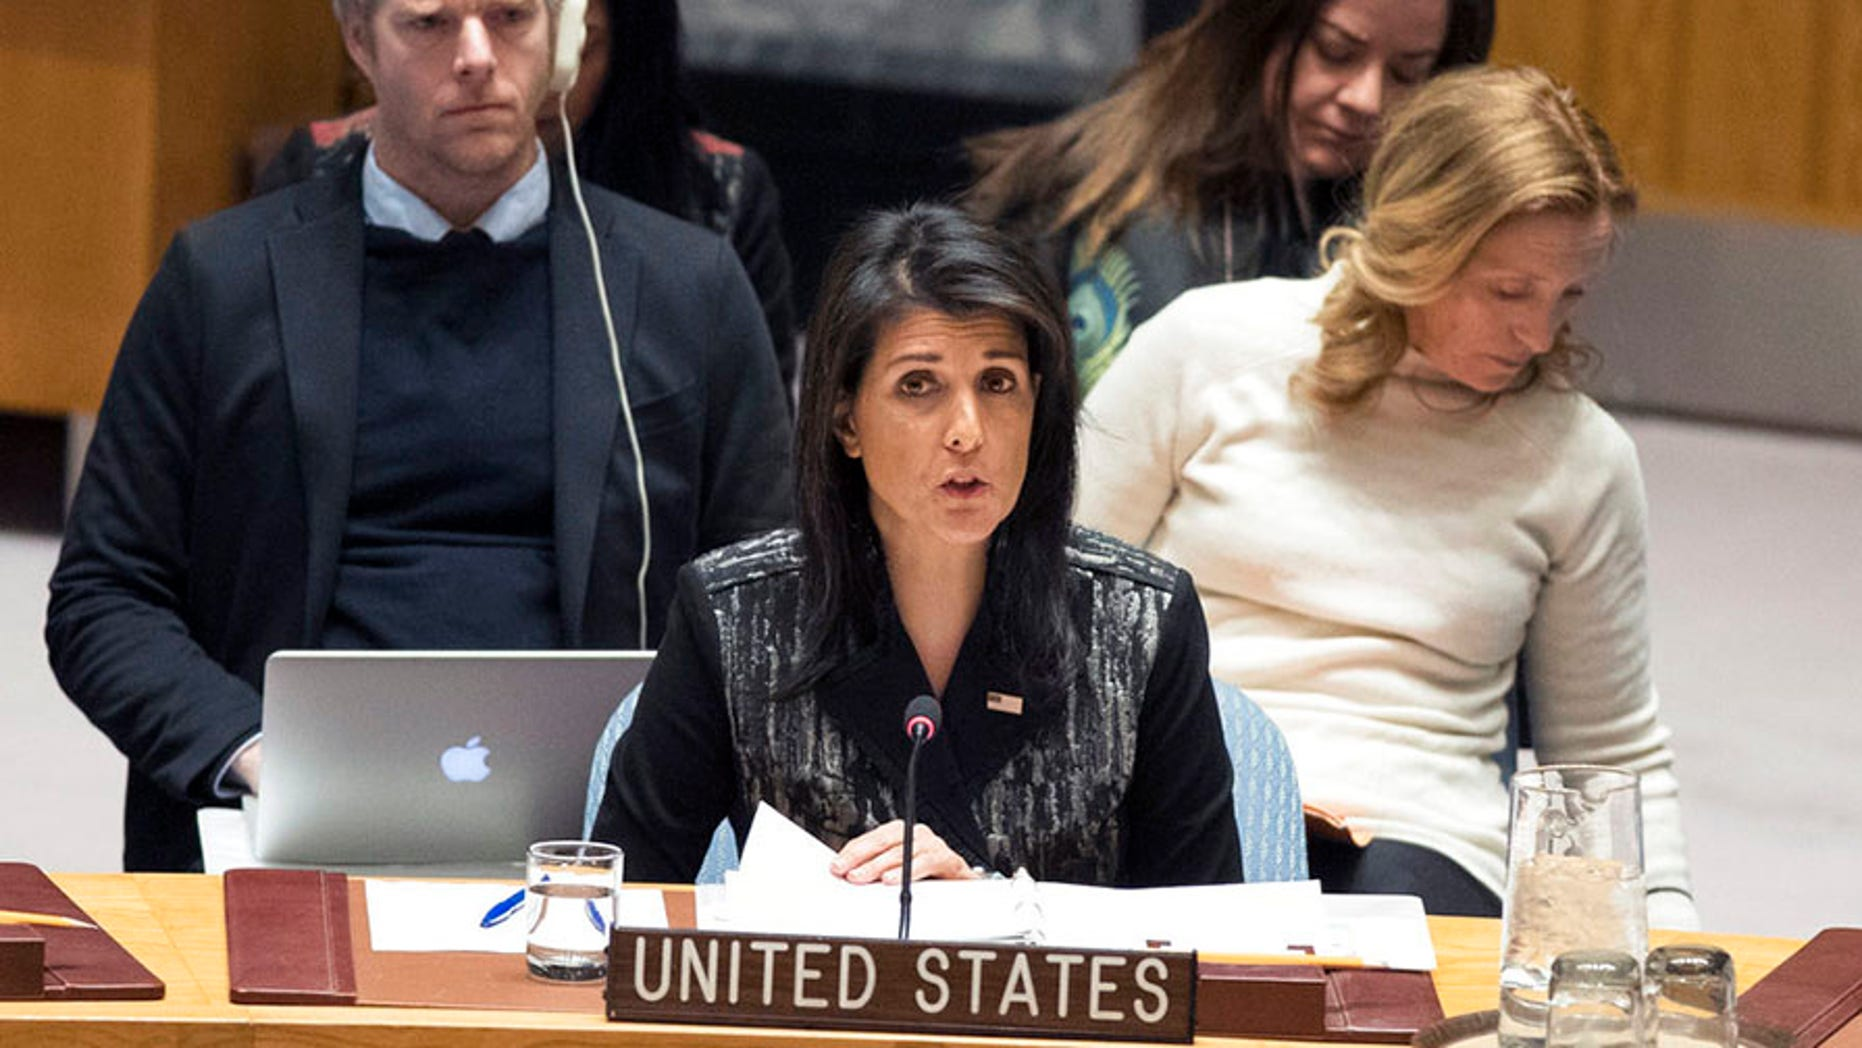 U.S. Ambassador to the U.N. Nikki Haley called for an emergency session of the U.N. Security Council over the Iran protests.